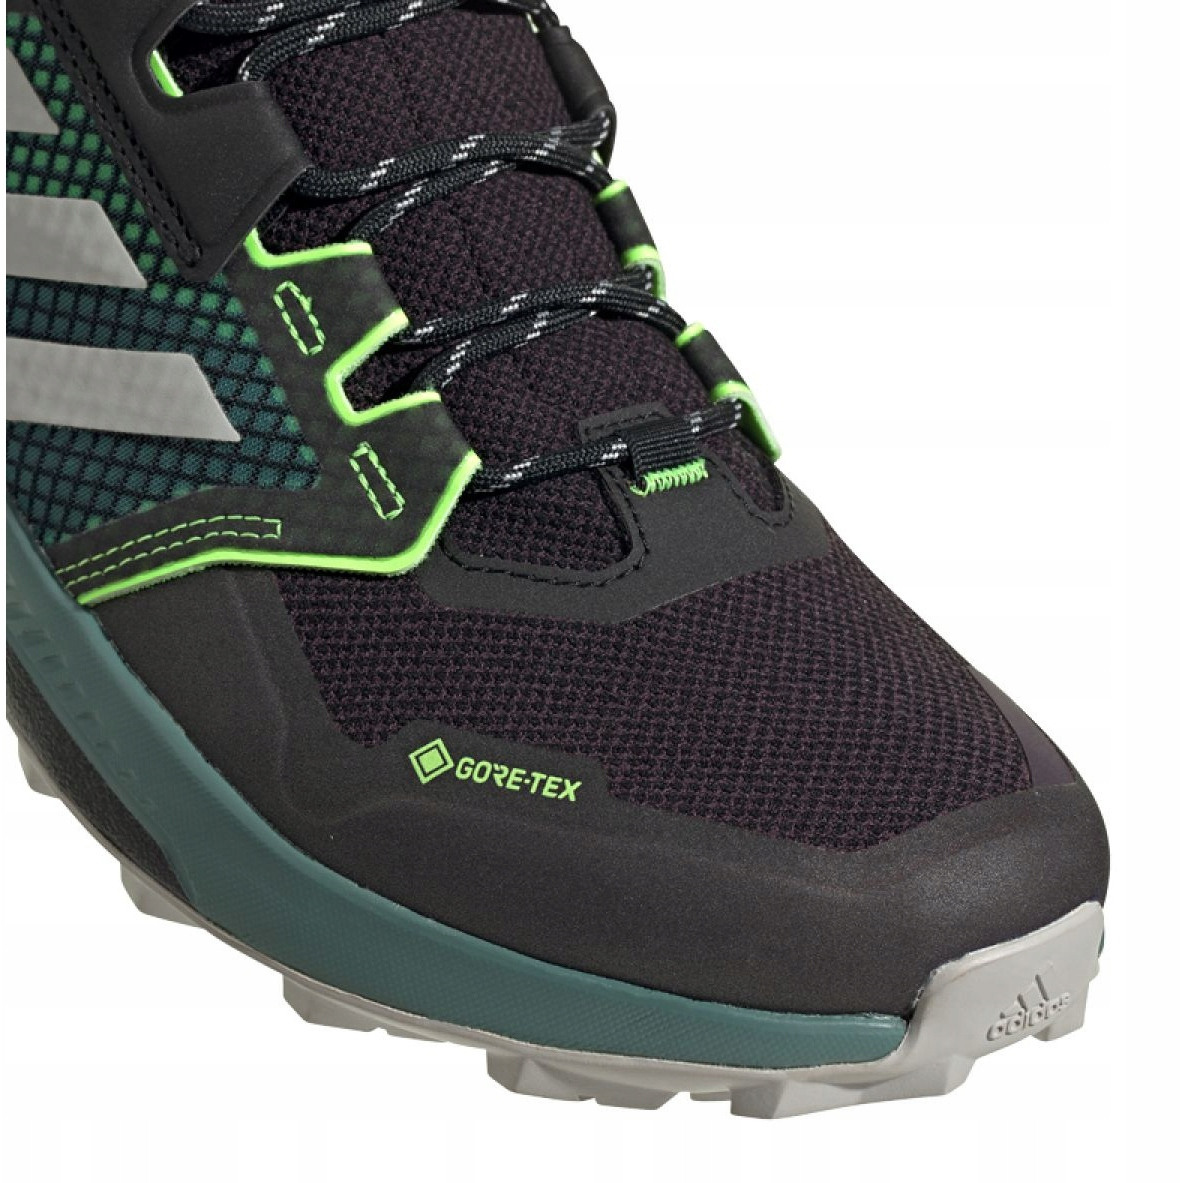 Adidas Terrex Trailmaker Gtx M FW9450 shoes